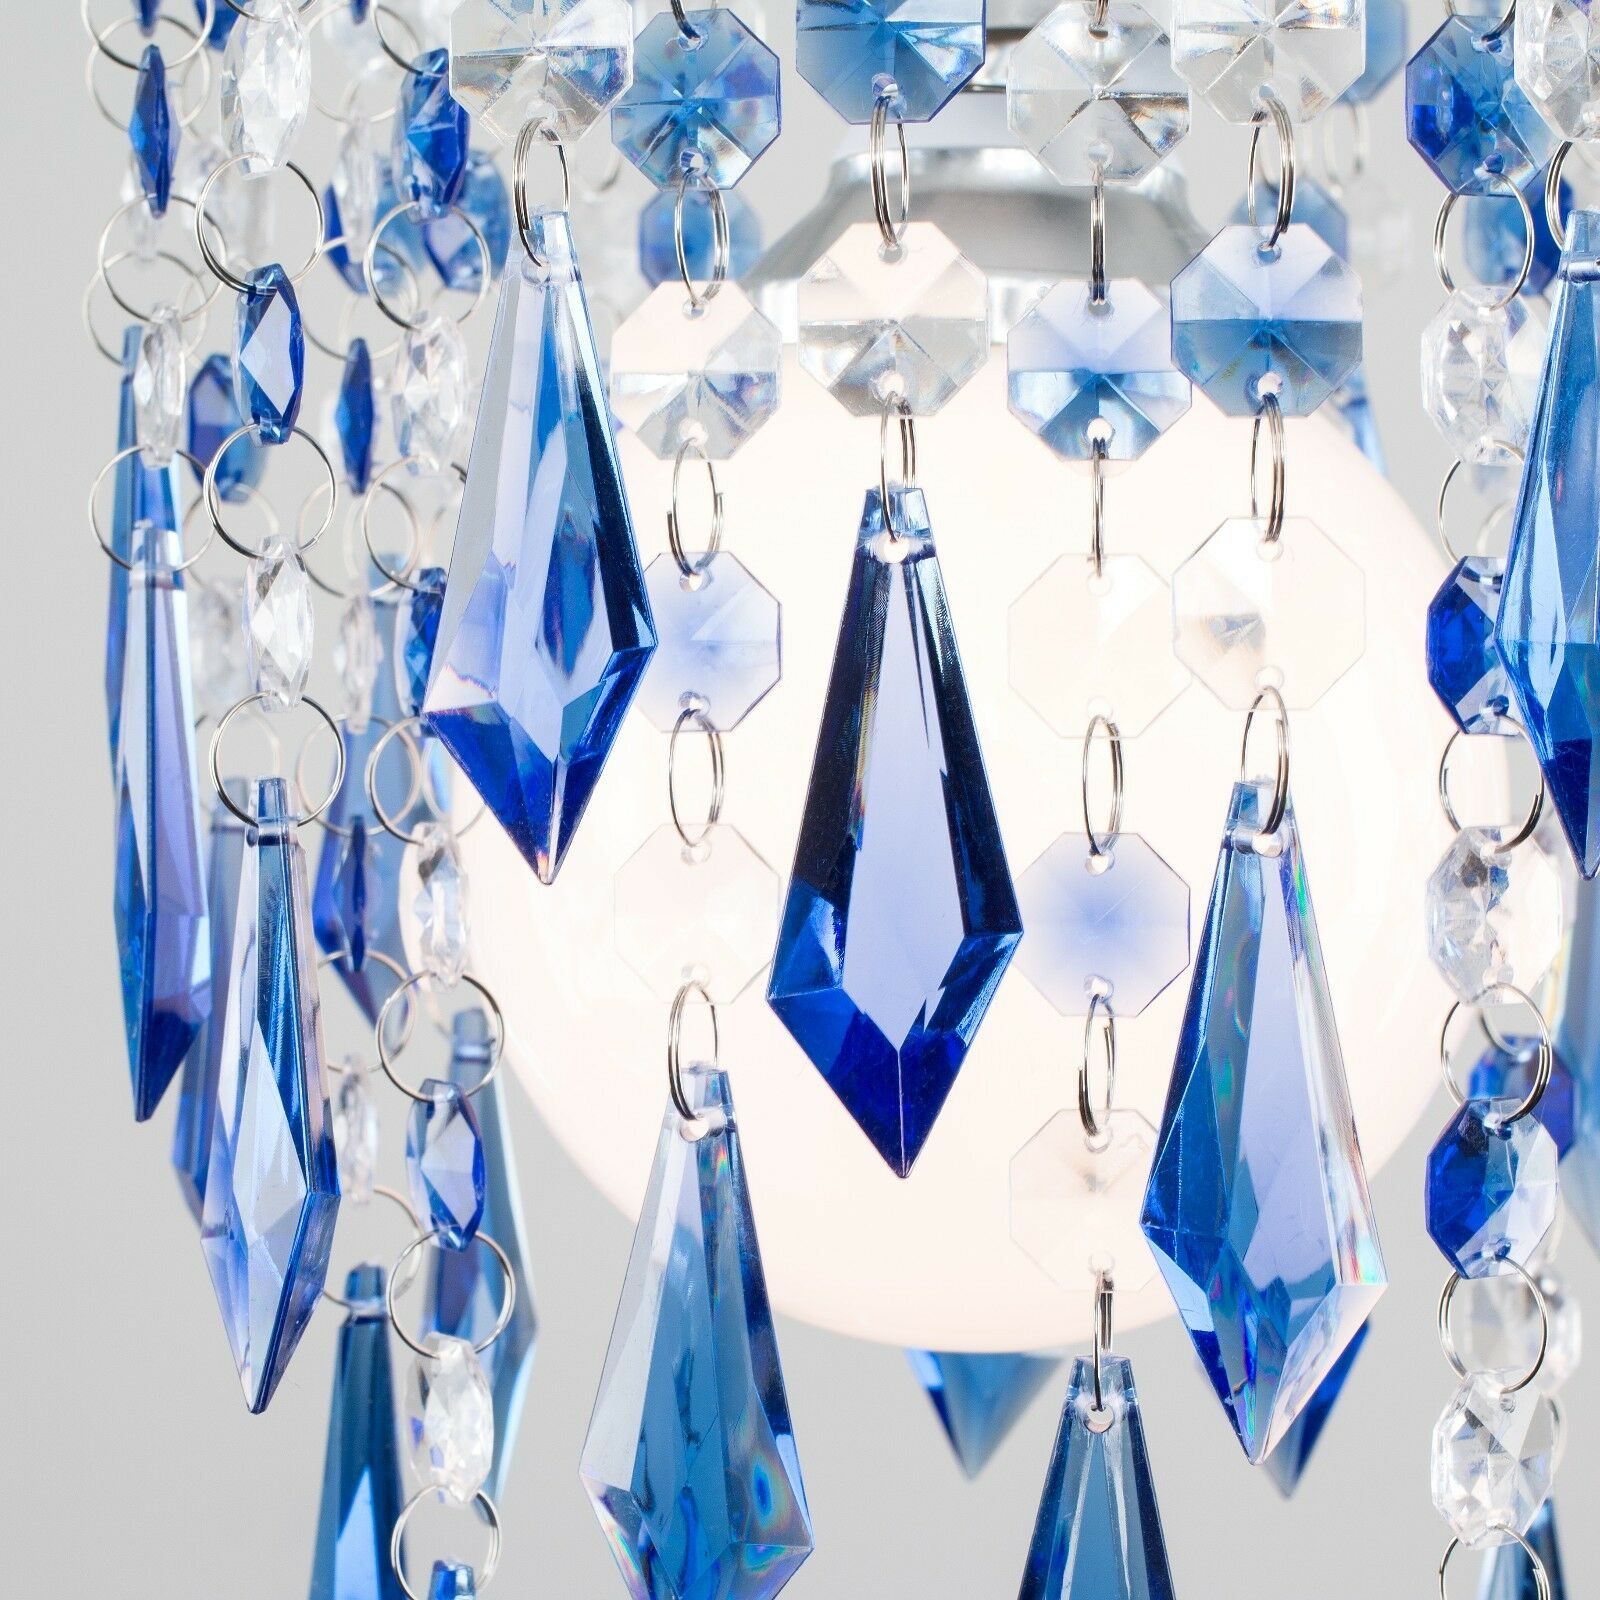 Modern-Acrylic-Crystal-Ceiling-Pendant-Light-Shade-Jewel-Chandeliers-Shades-NEW thumbnail 14